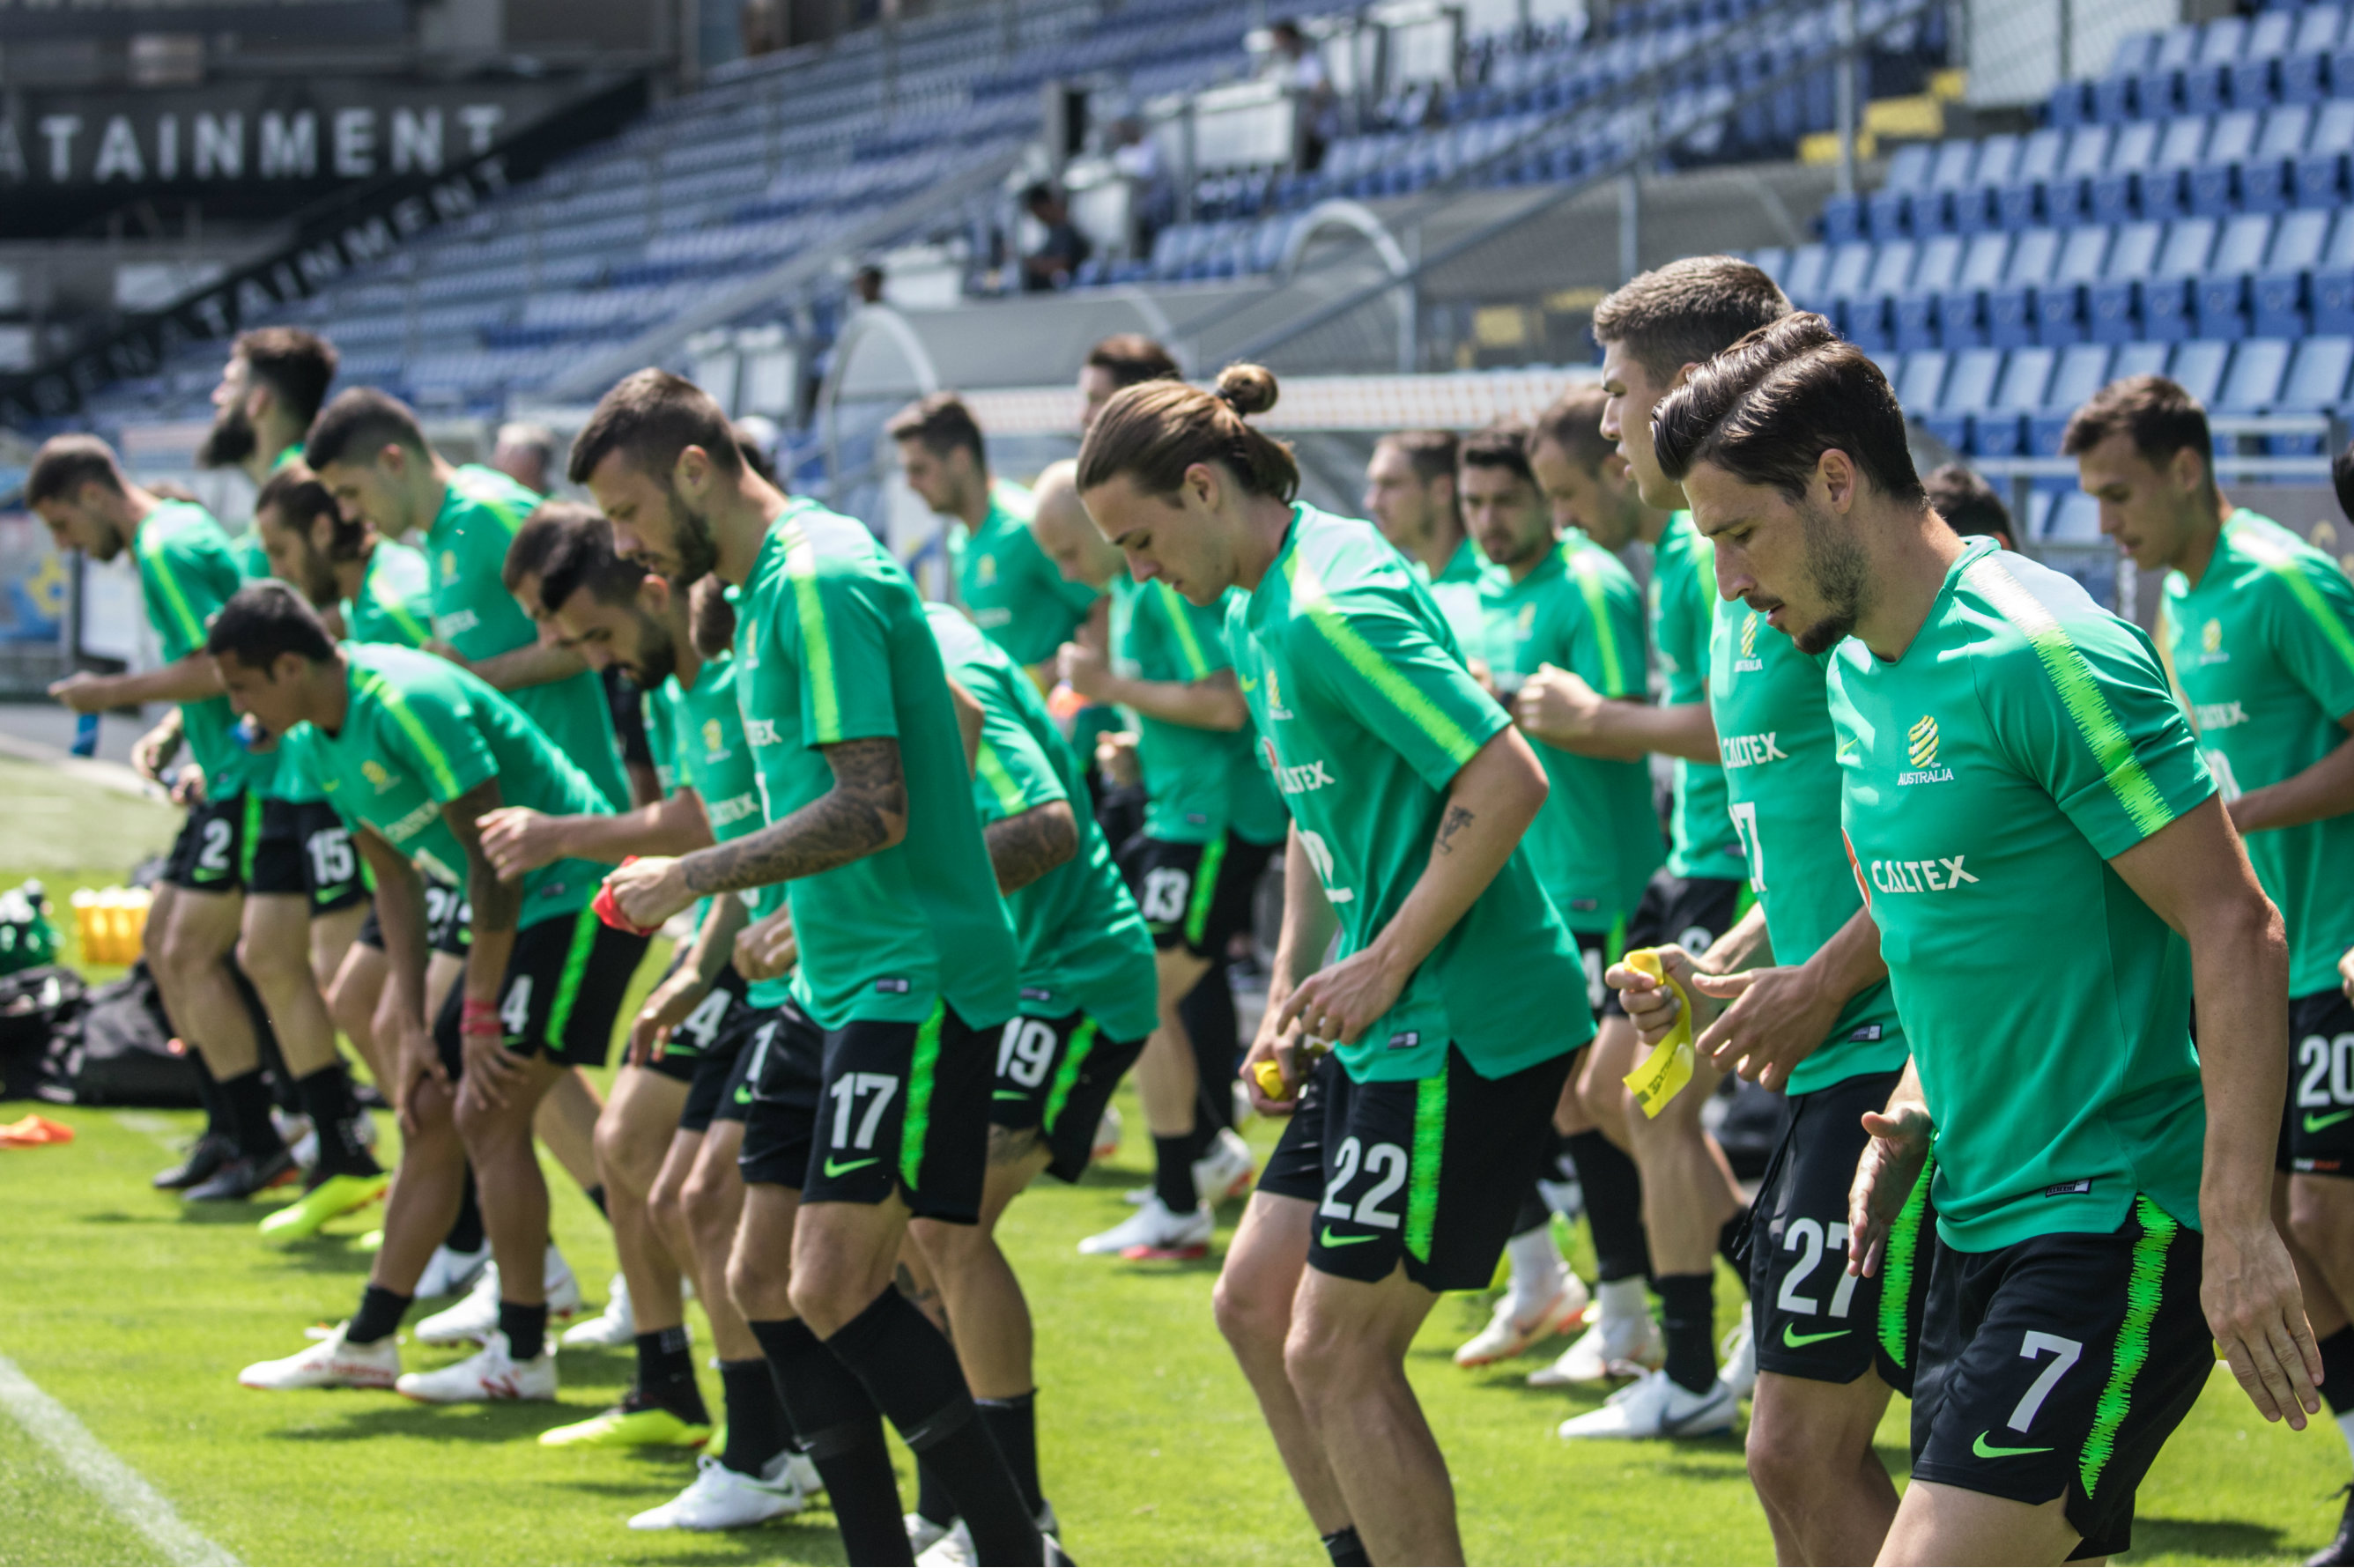 The Caltex Socceroos warm up before starting training.